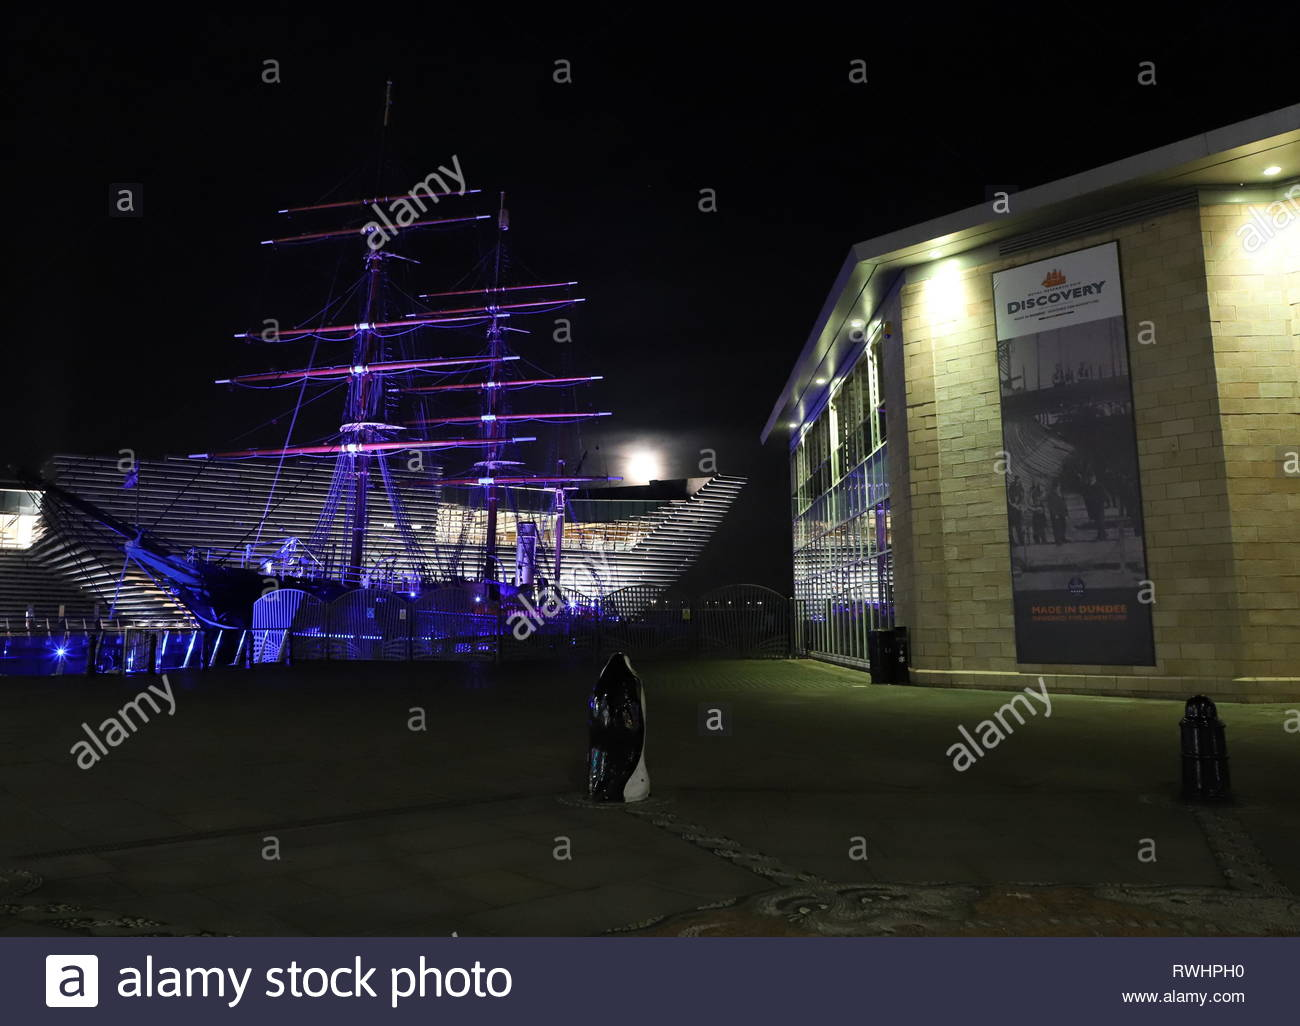 RRS Discovery, Discovery Point and V&A Design Museum by night Dundee Scotland  February 2019 Stock Photo